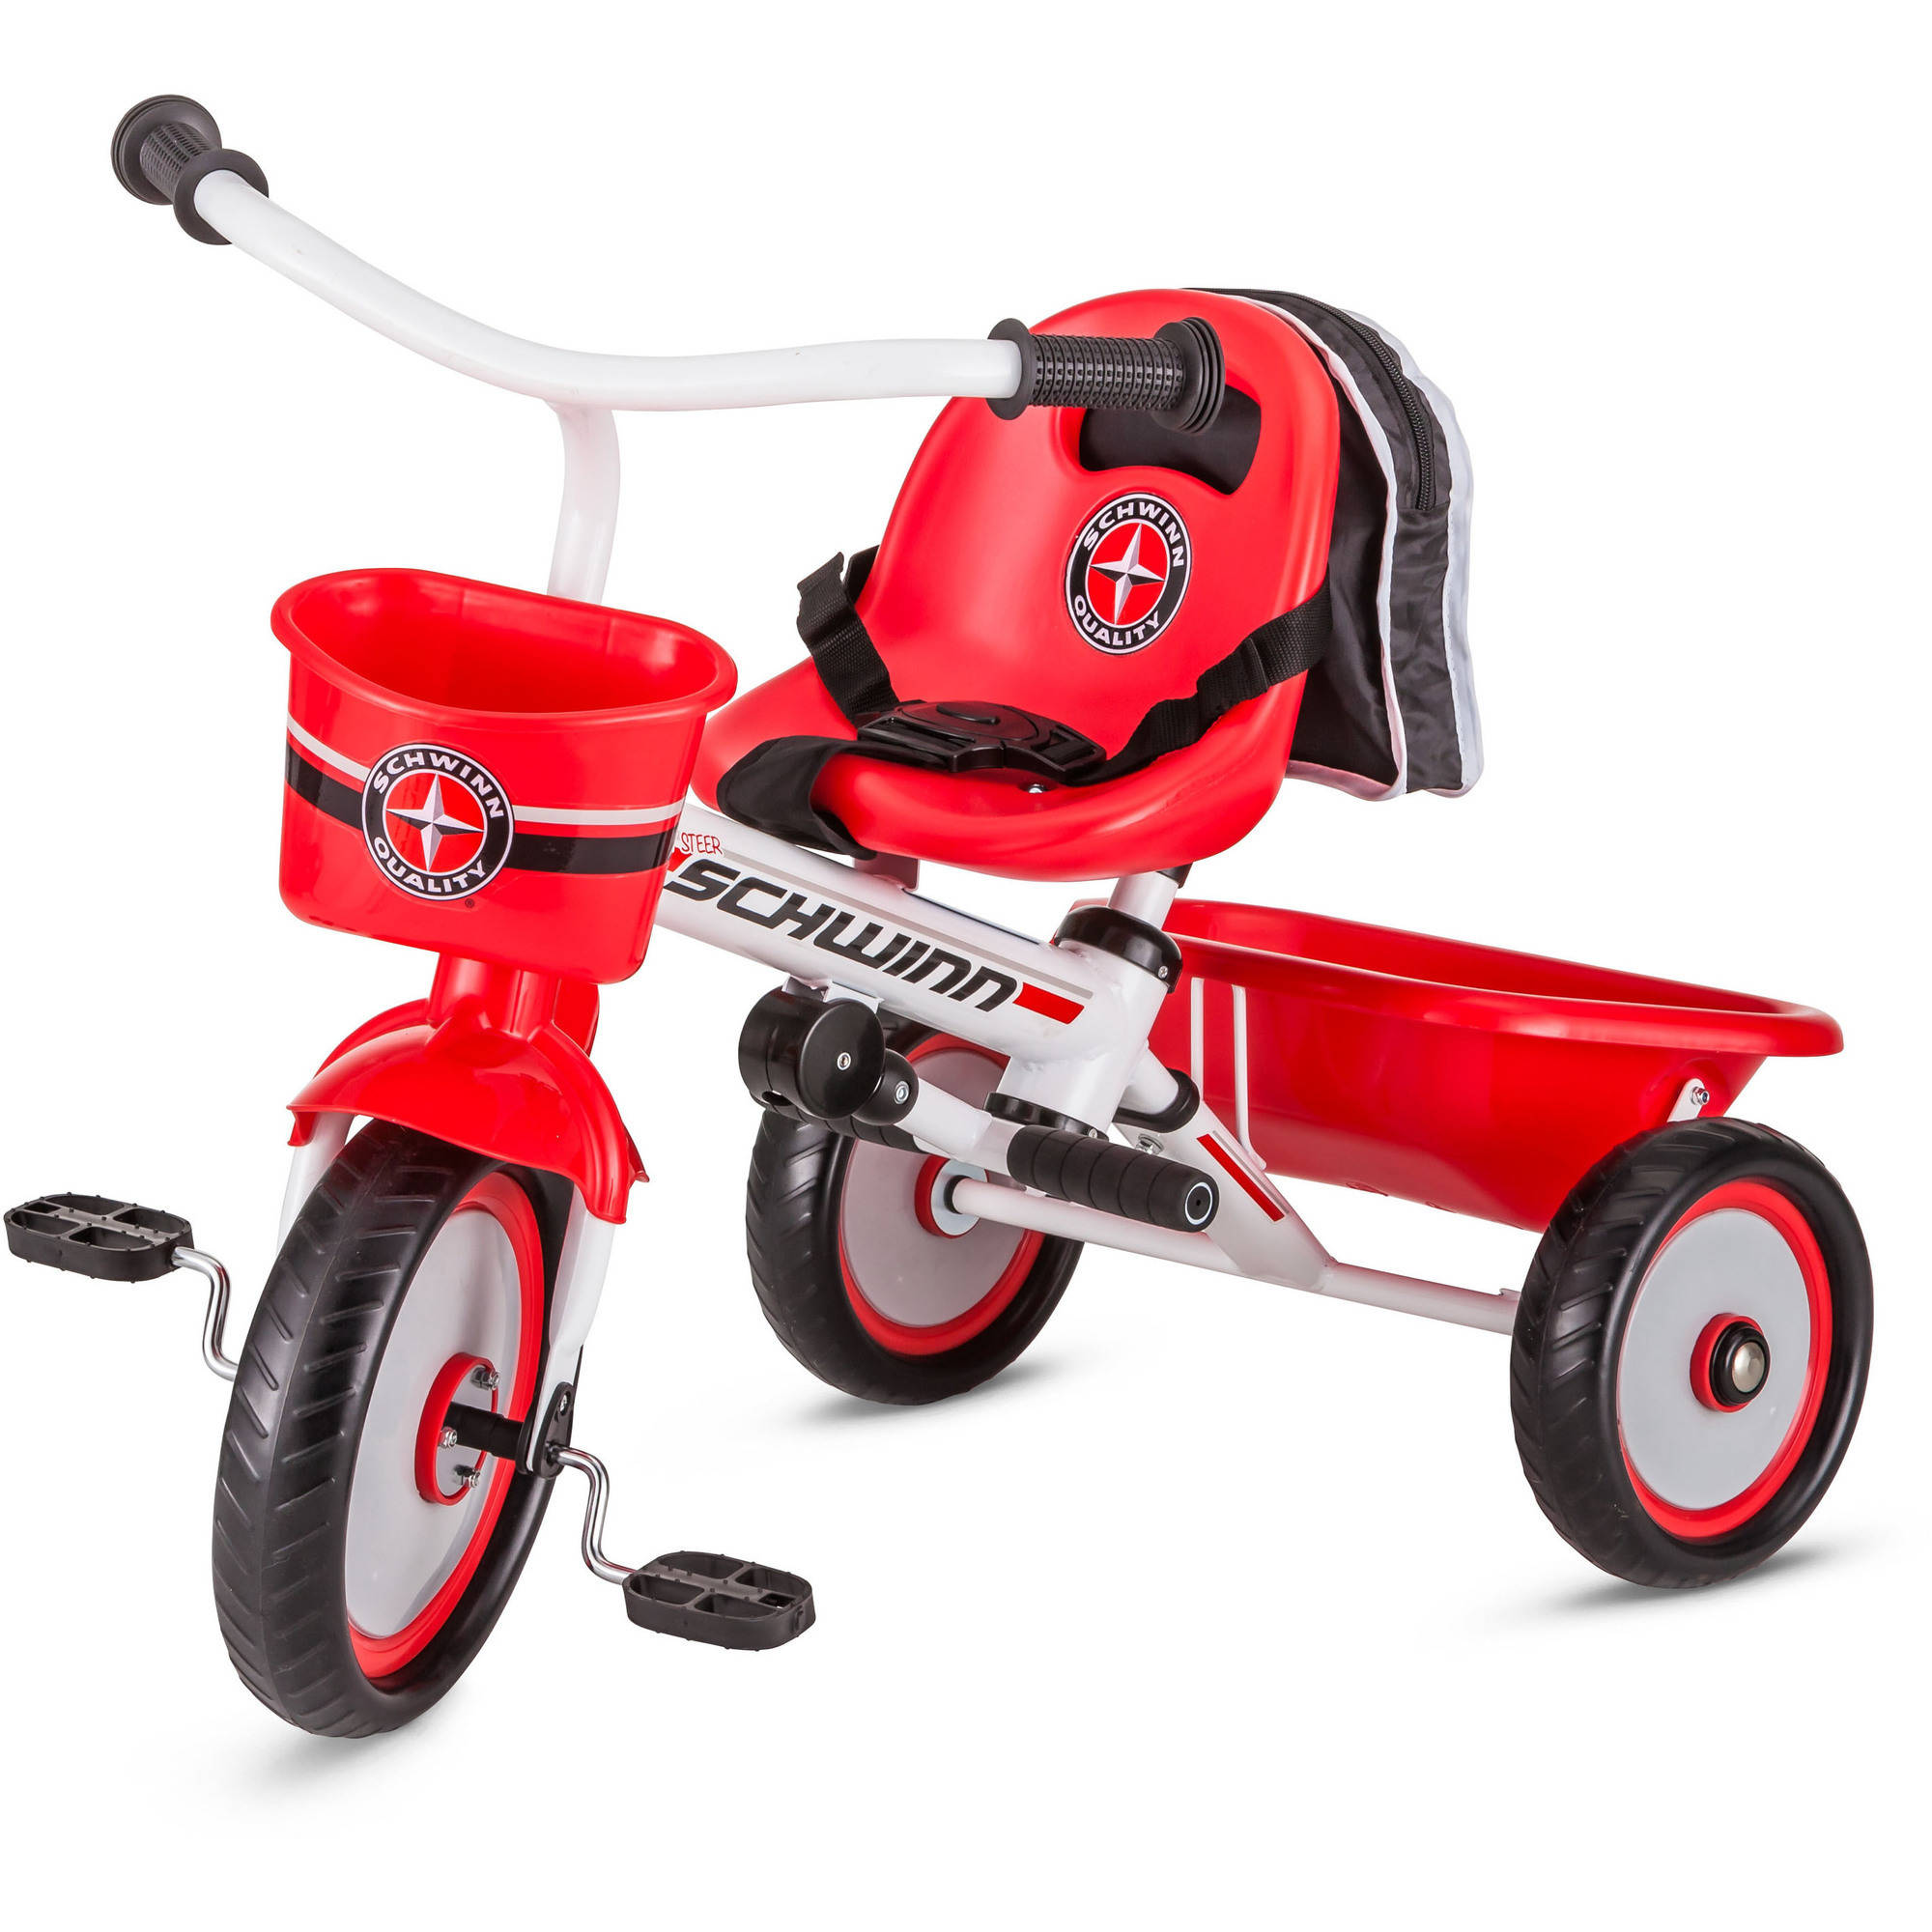 fb0063ac466 Schwinn Easy-Steer Tricycle with Parent Assist Handle, Red - Walmart.com